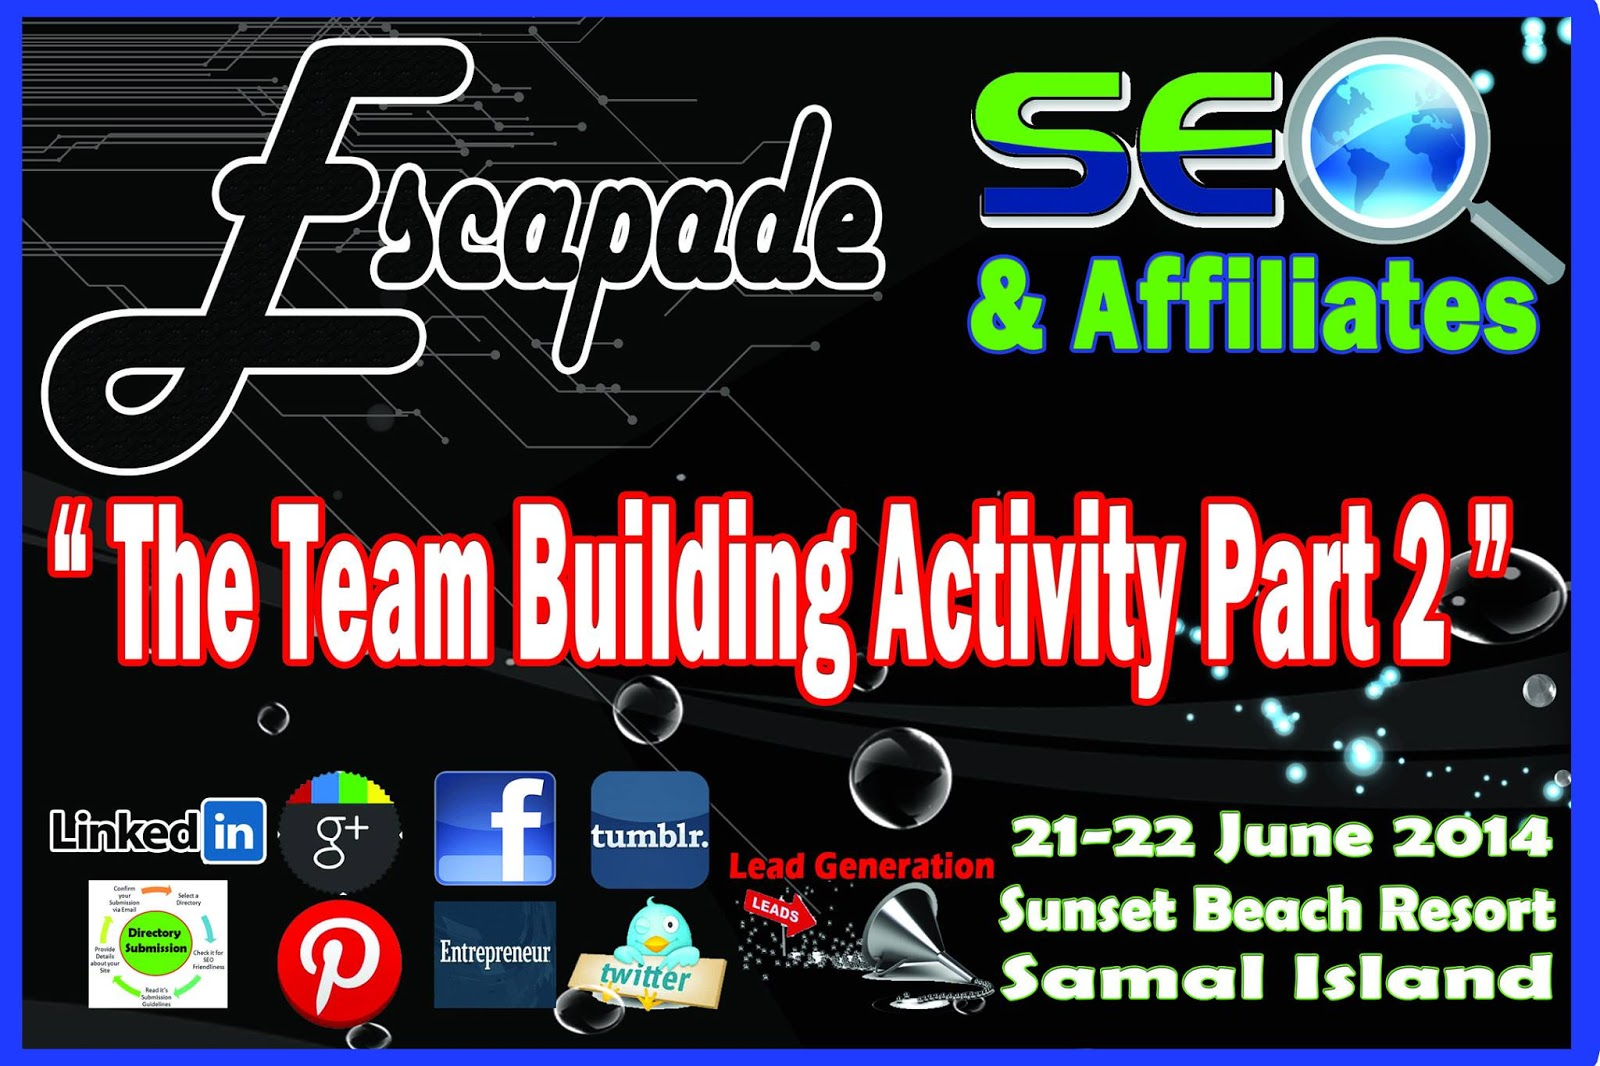 Escapade: SEO and Affiliates' Team Building Activity Part 2 | www.emmanuelalba.com